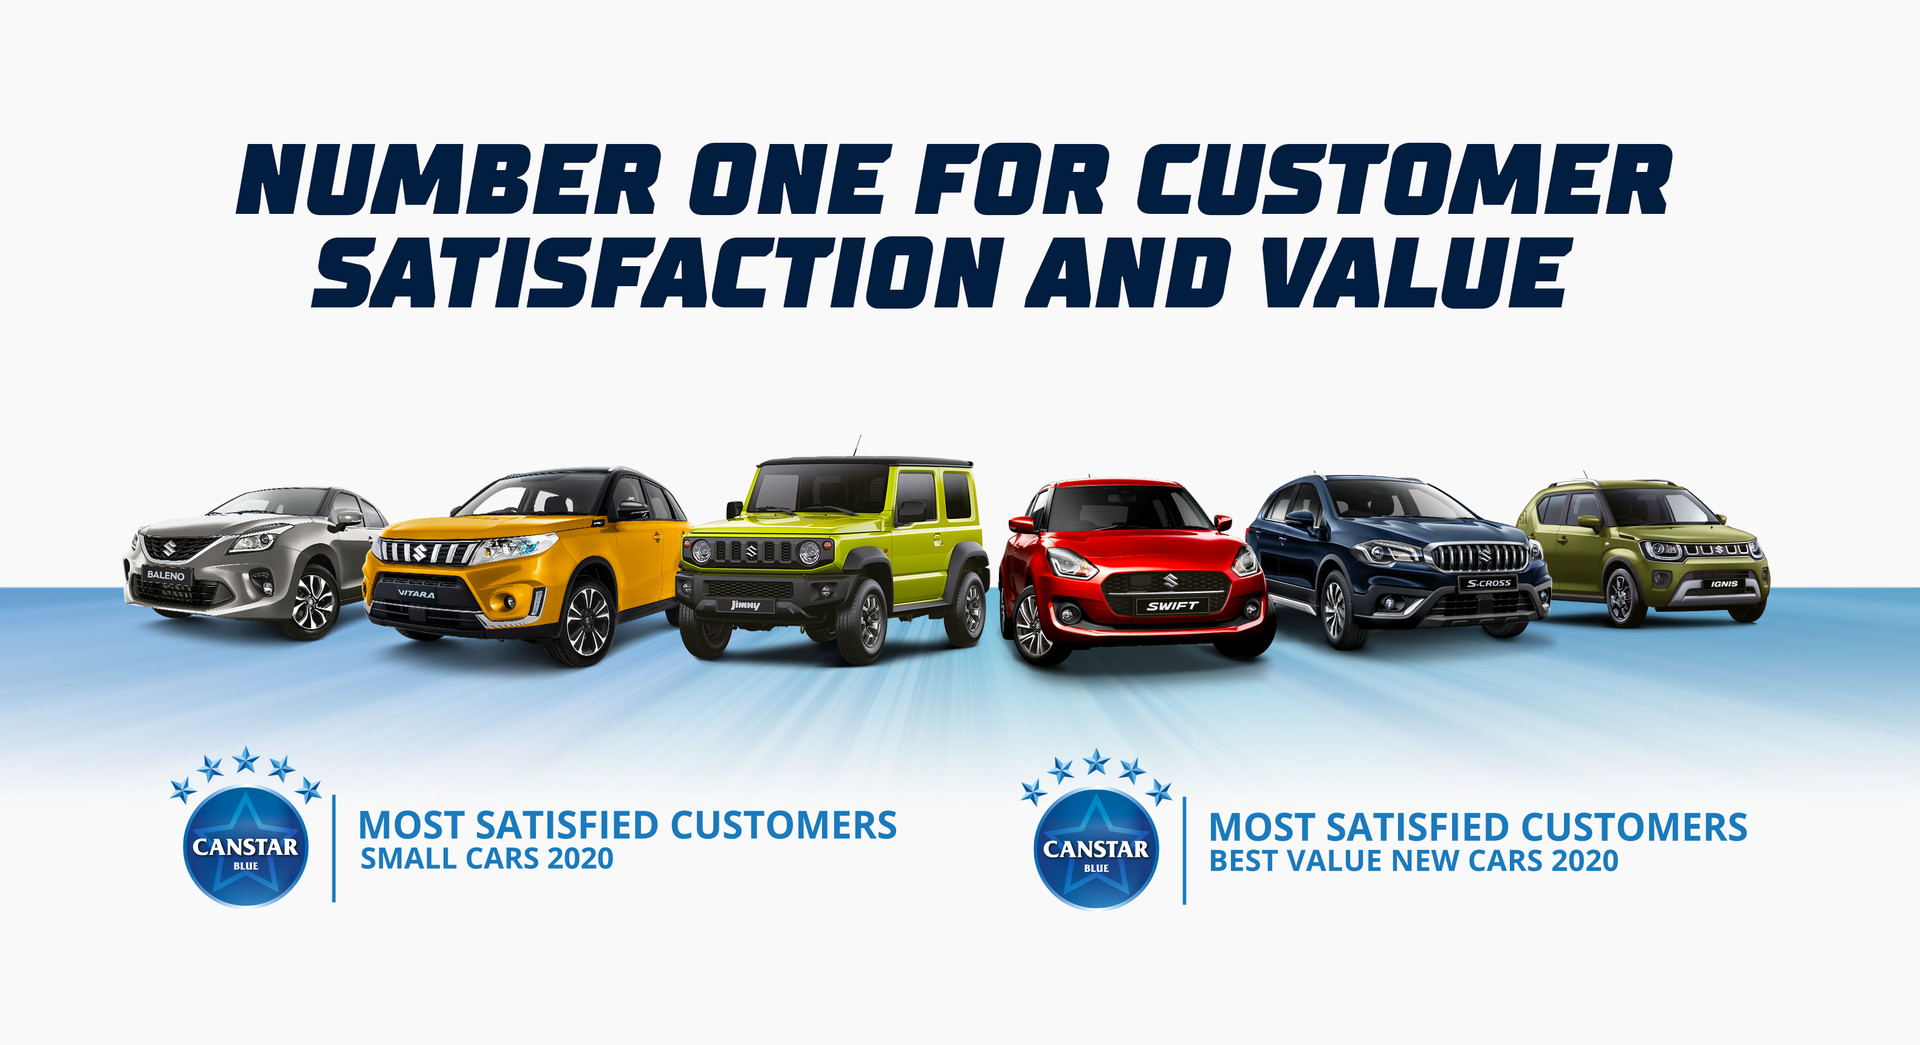 Suzuki Number One for Customer Satisfaction and Value